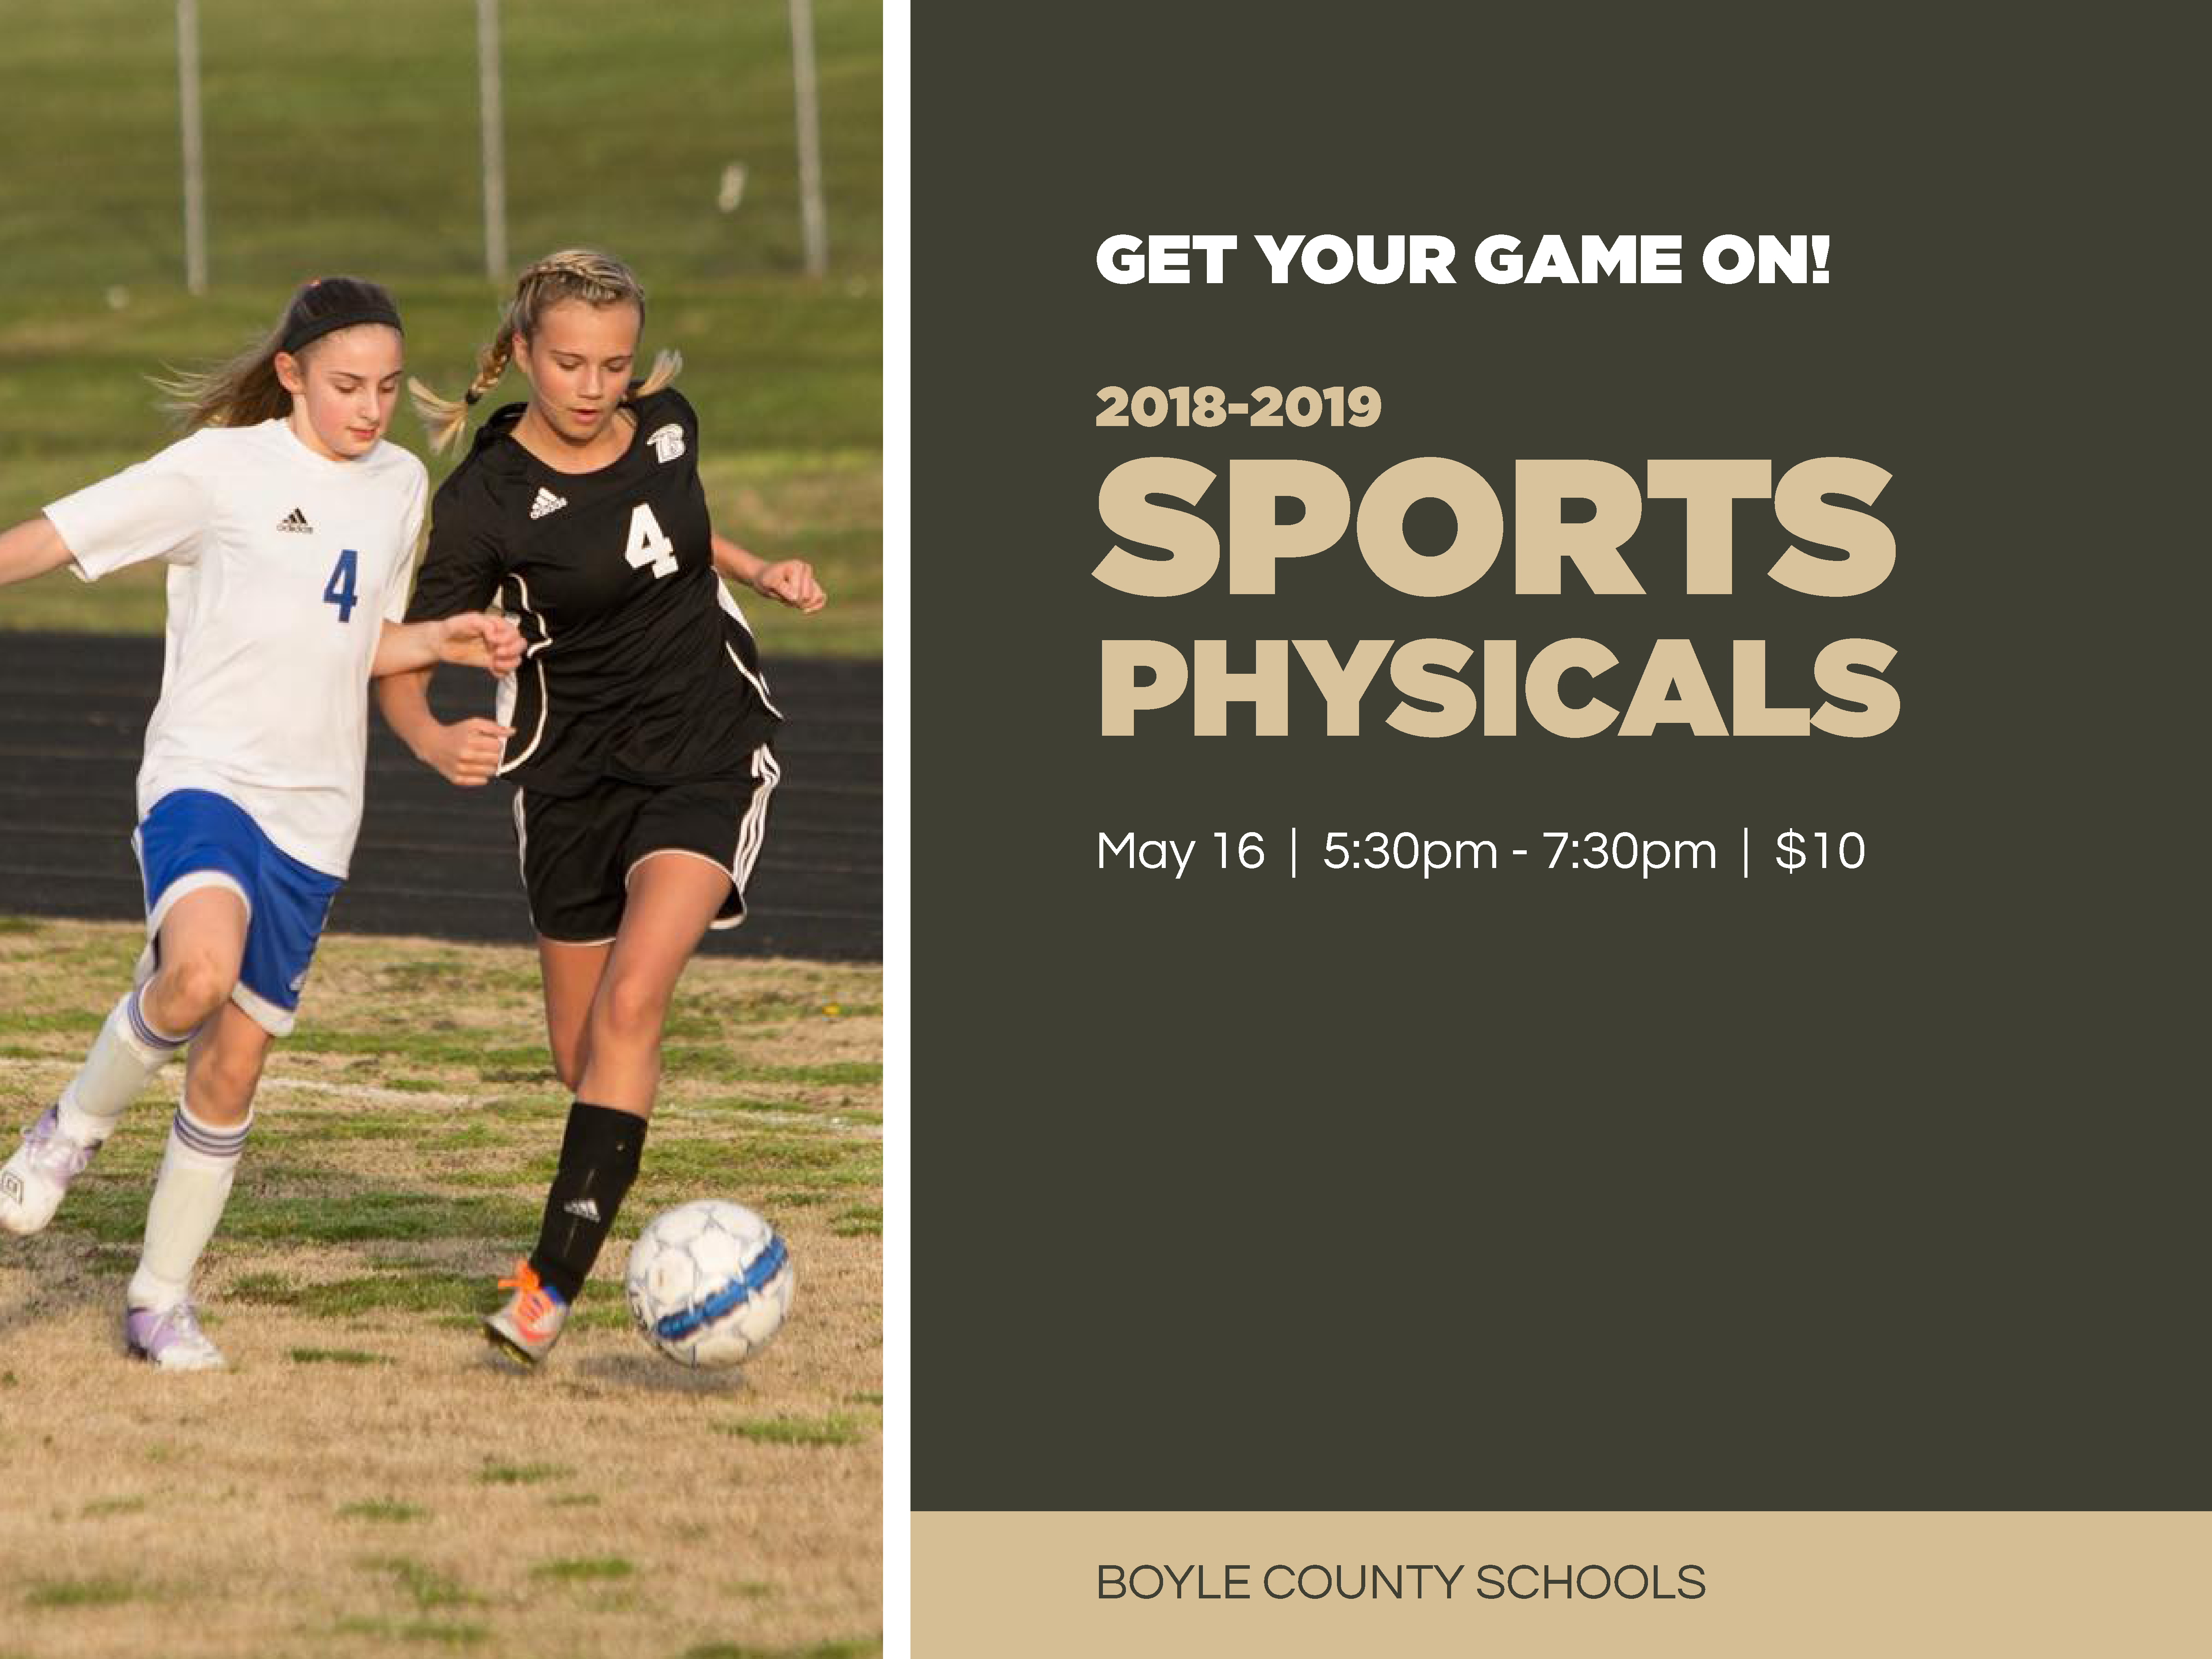 Sports Physicals Scheduled